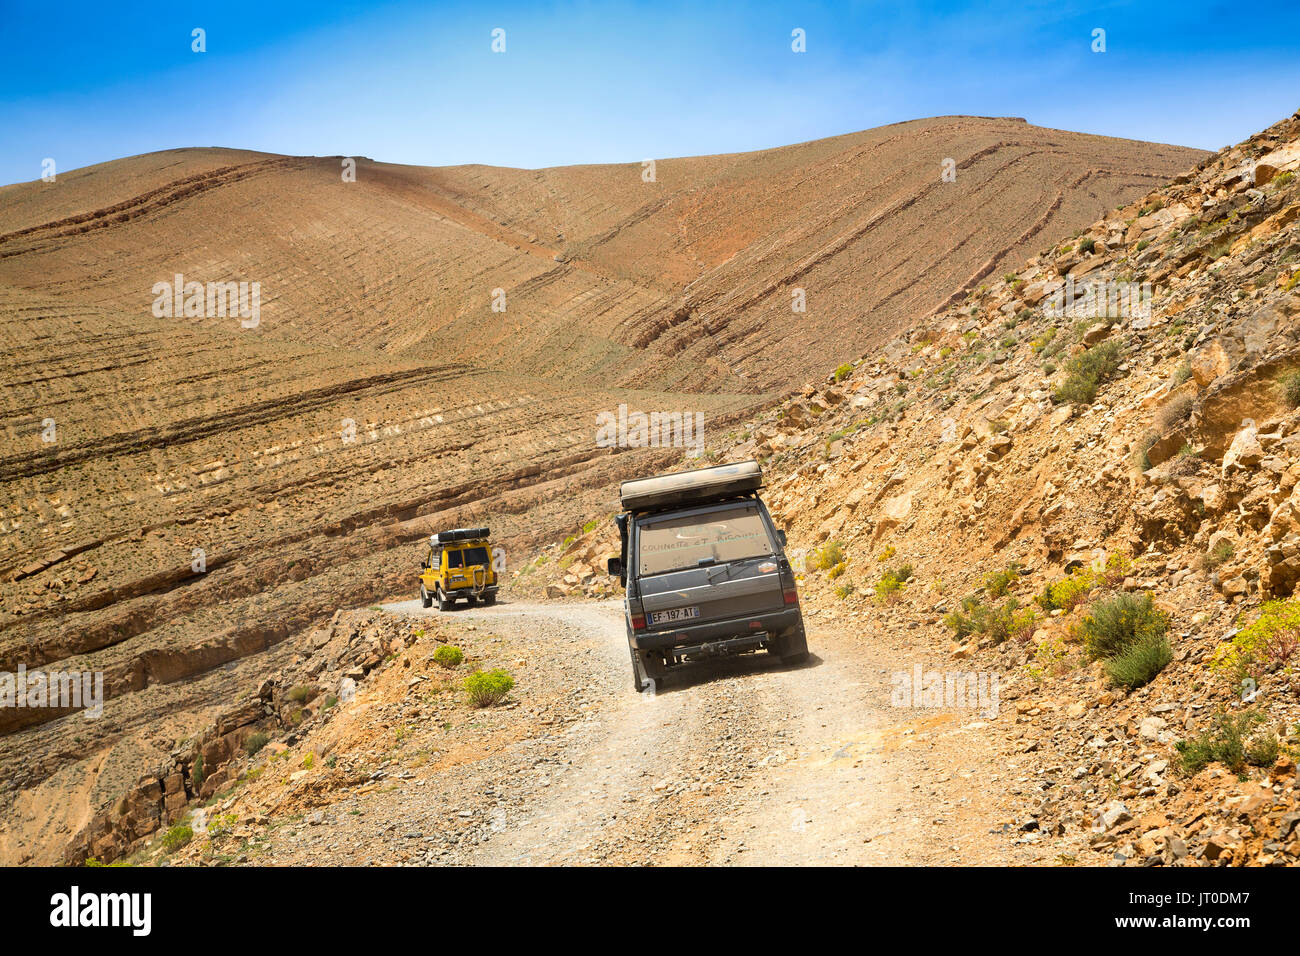 Landscape. All-terrain vehicle, Mountain road in bad condition. Dades Valley, Dades Gorges, High Atlas. Morocco, Maghreb North Africa - Stock Image